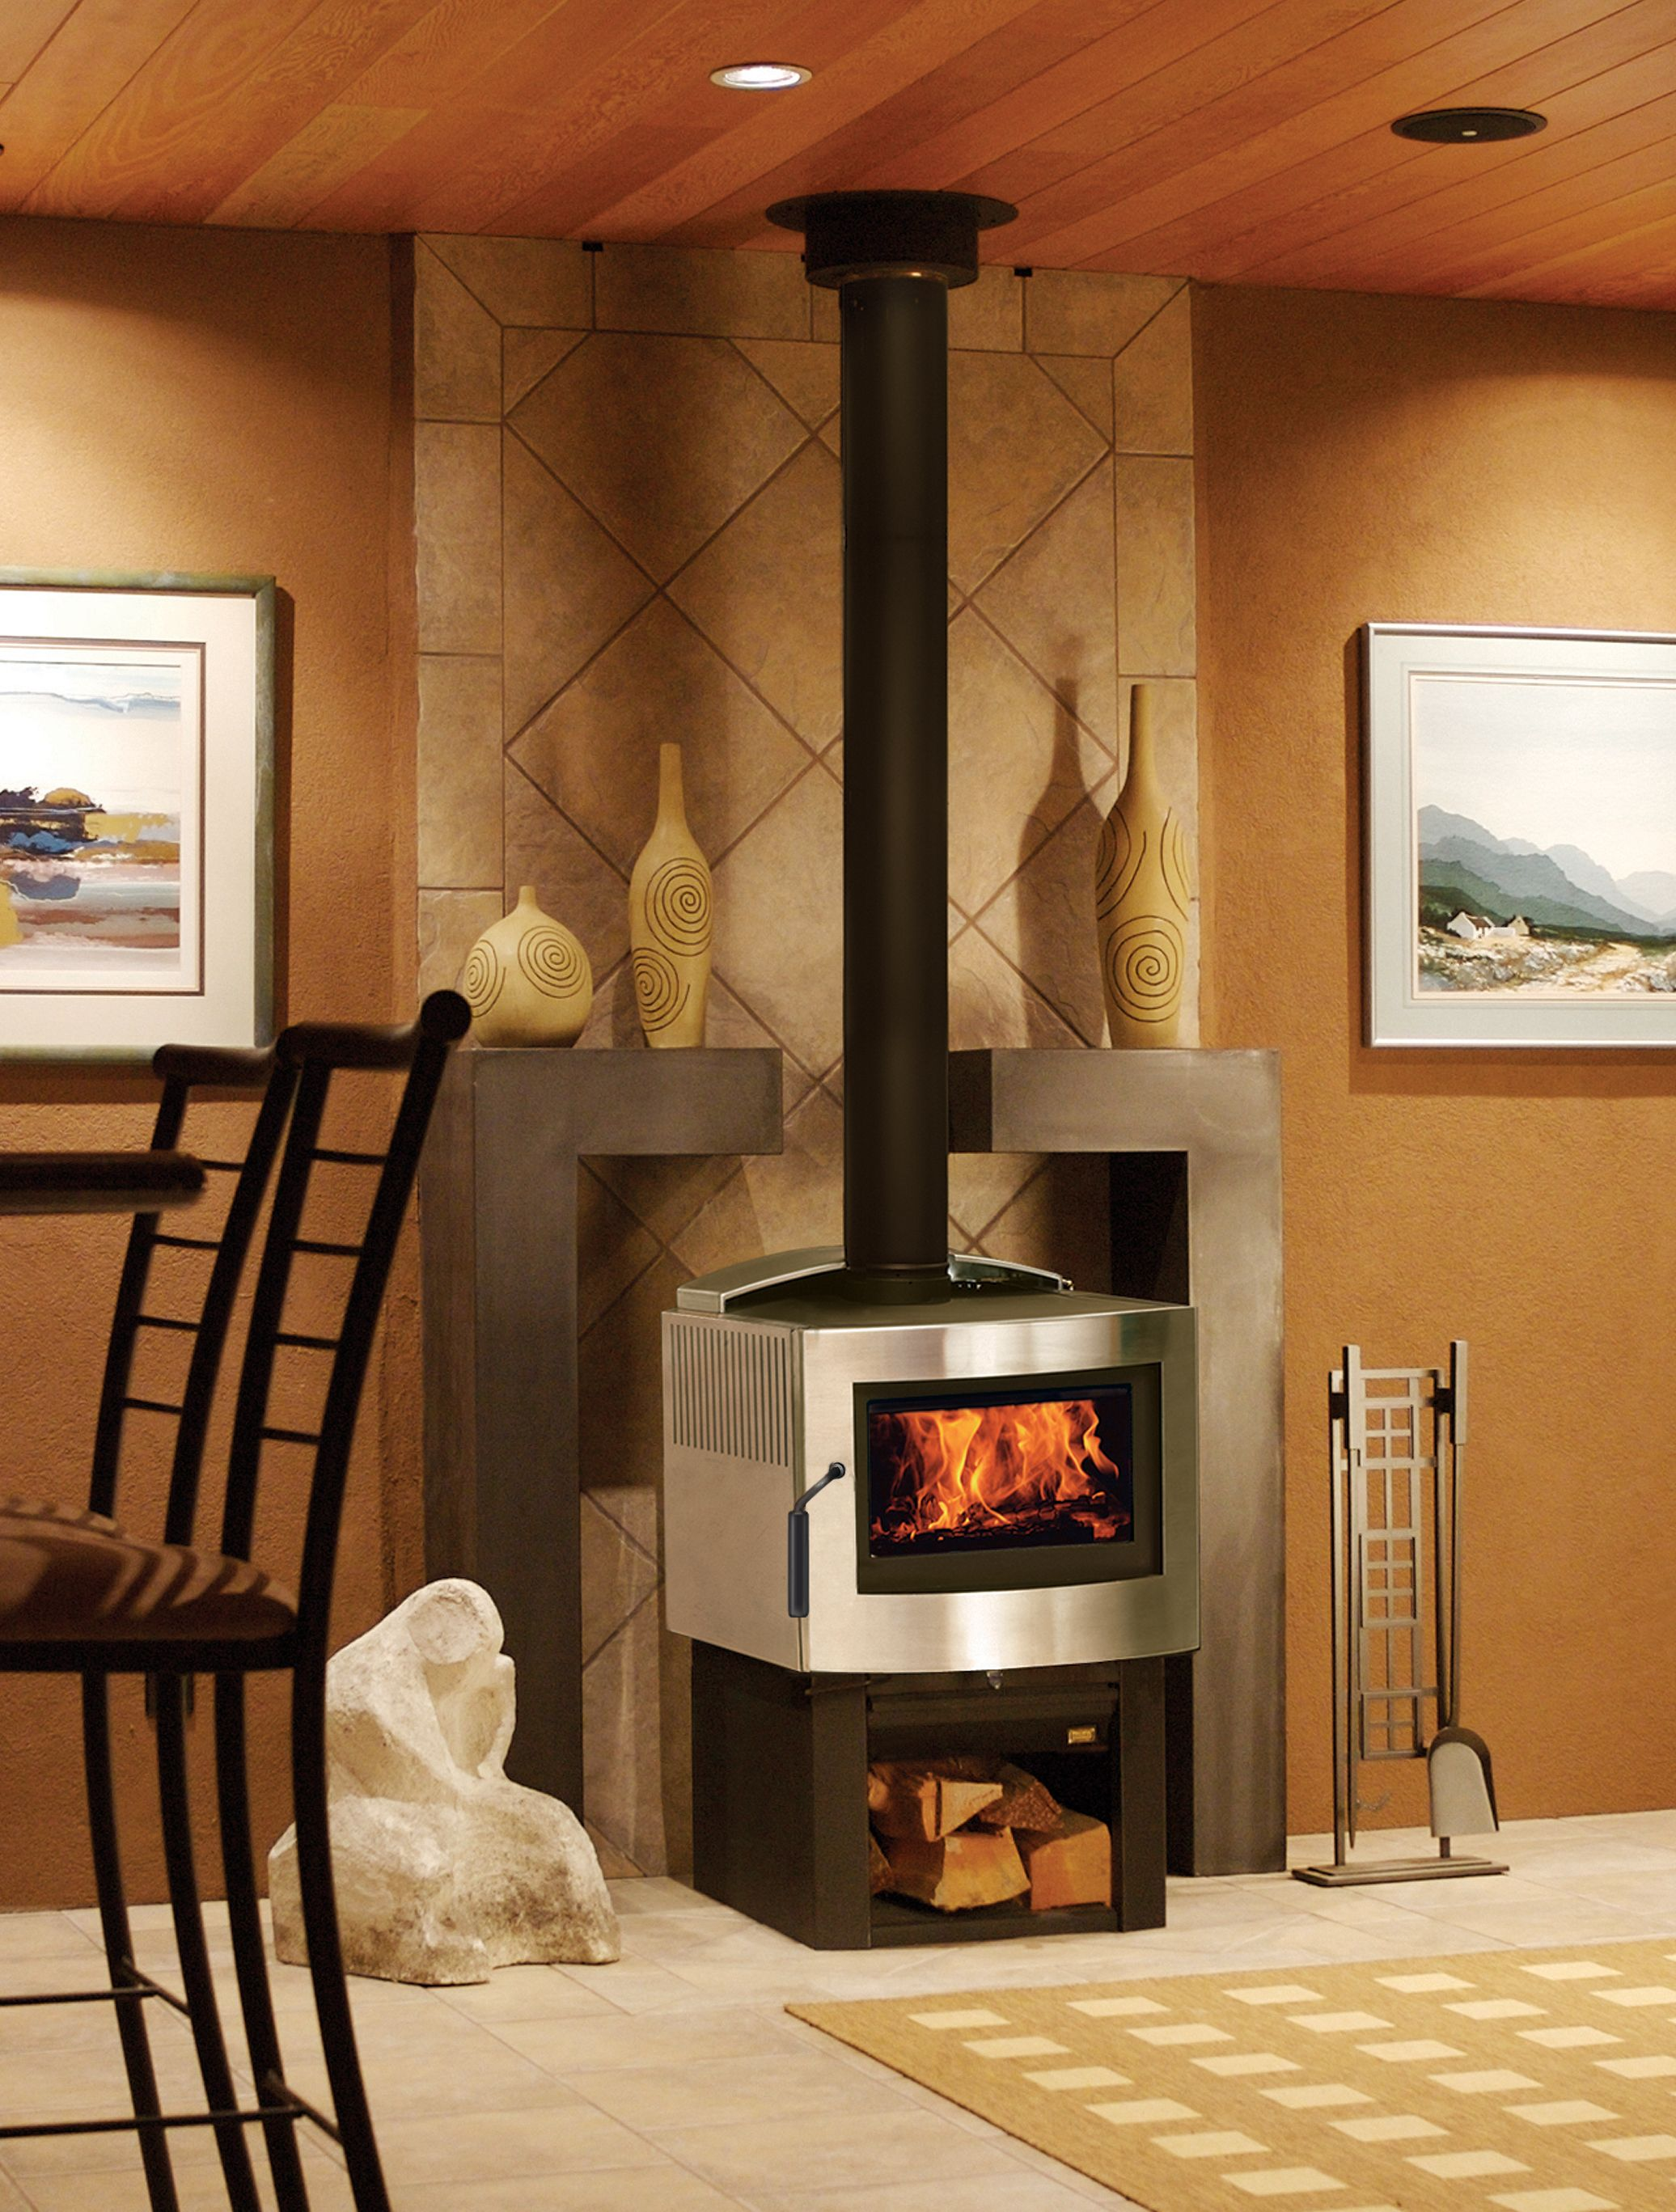 Pacific Energy Fusion Woodstove In Stainless Steel Finish Wood Heat Wood Burner Wood Fireplace